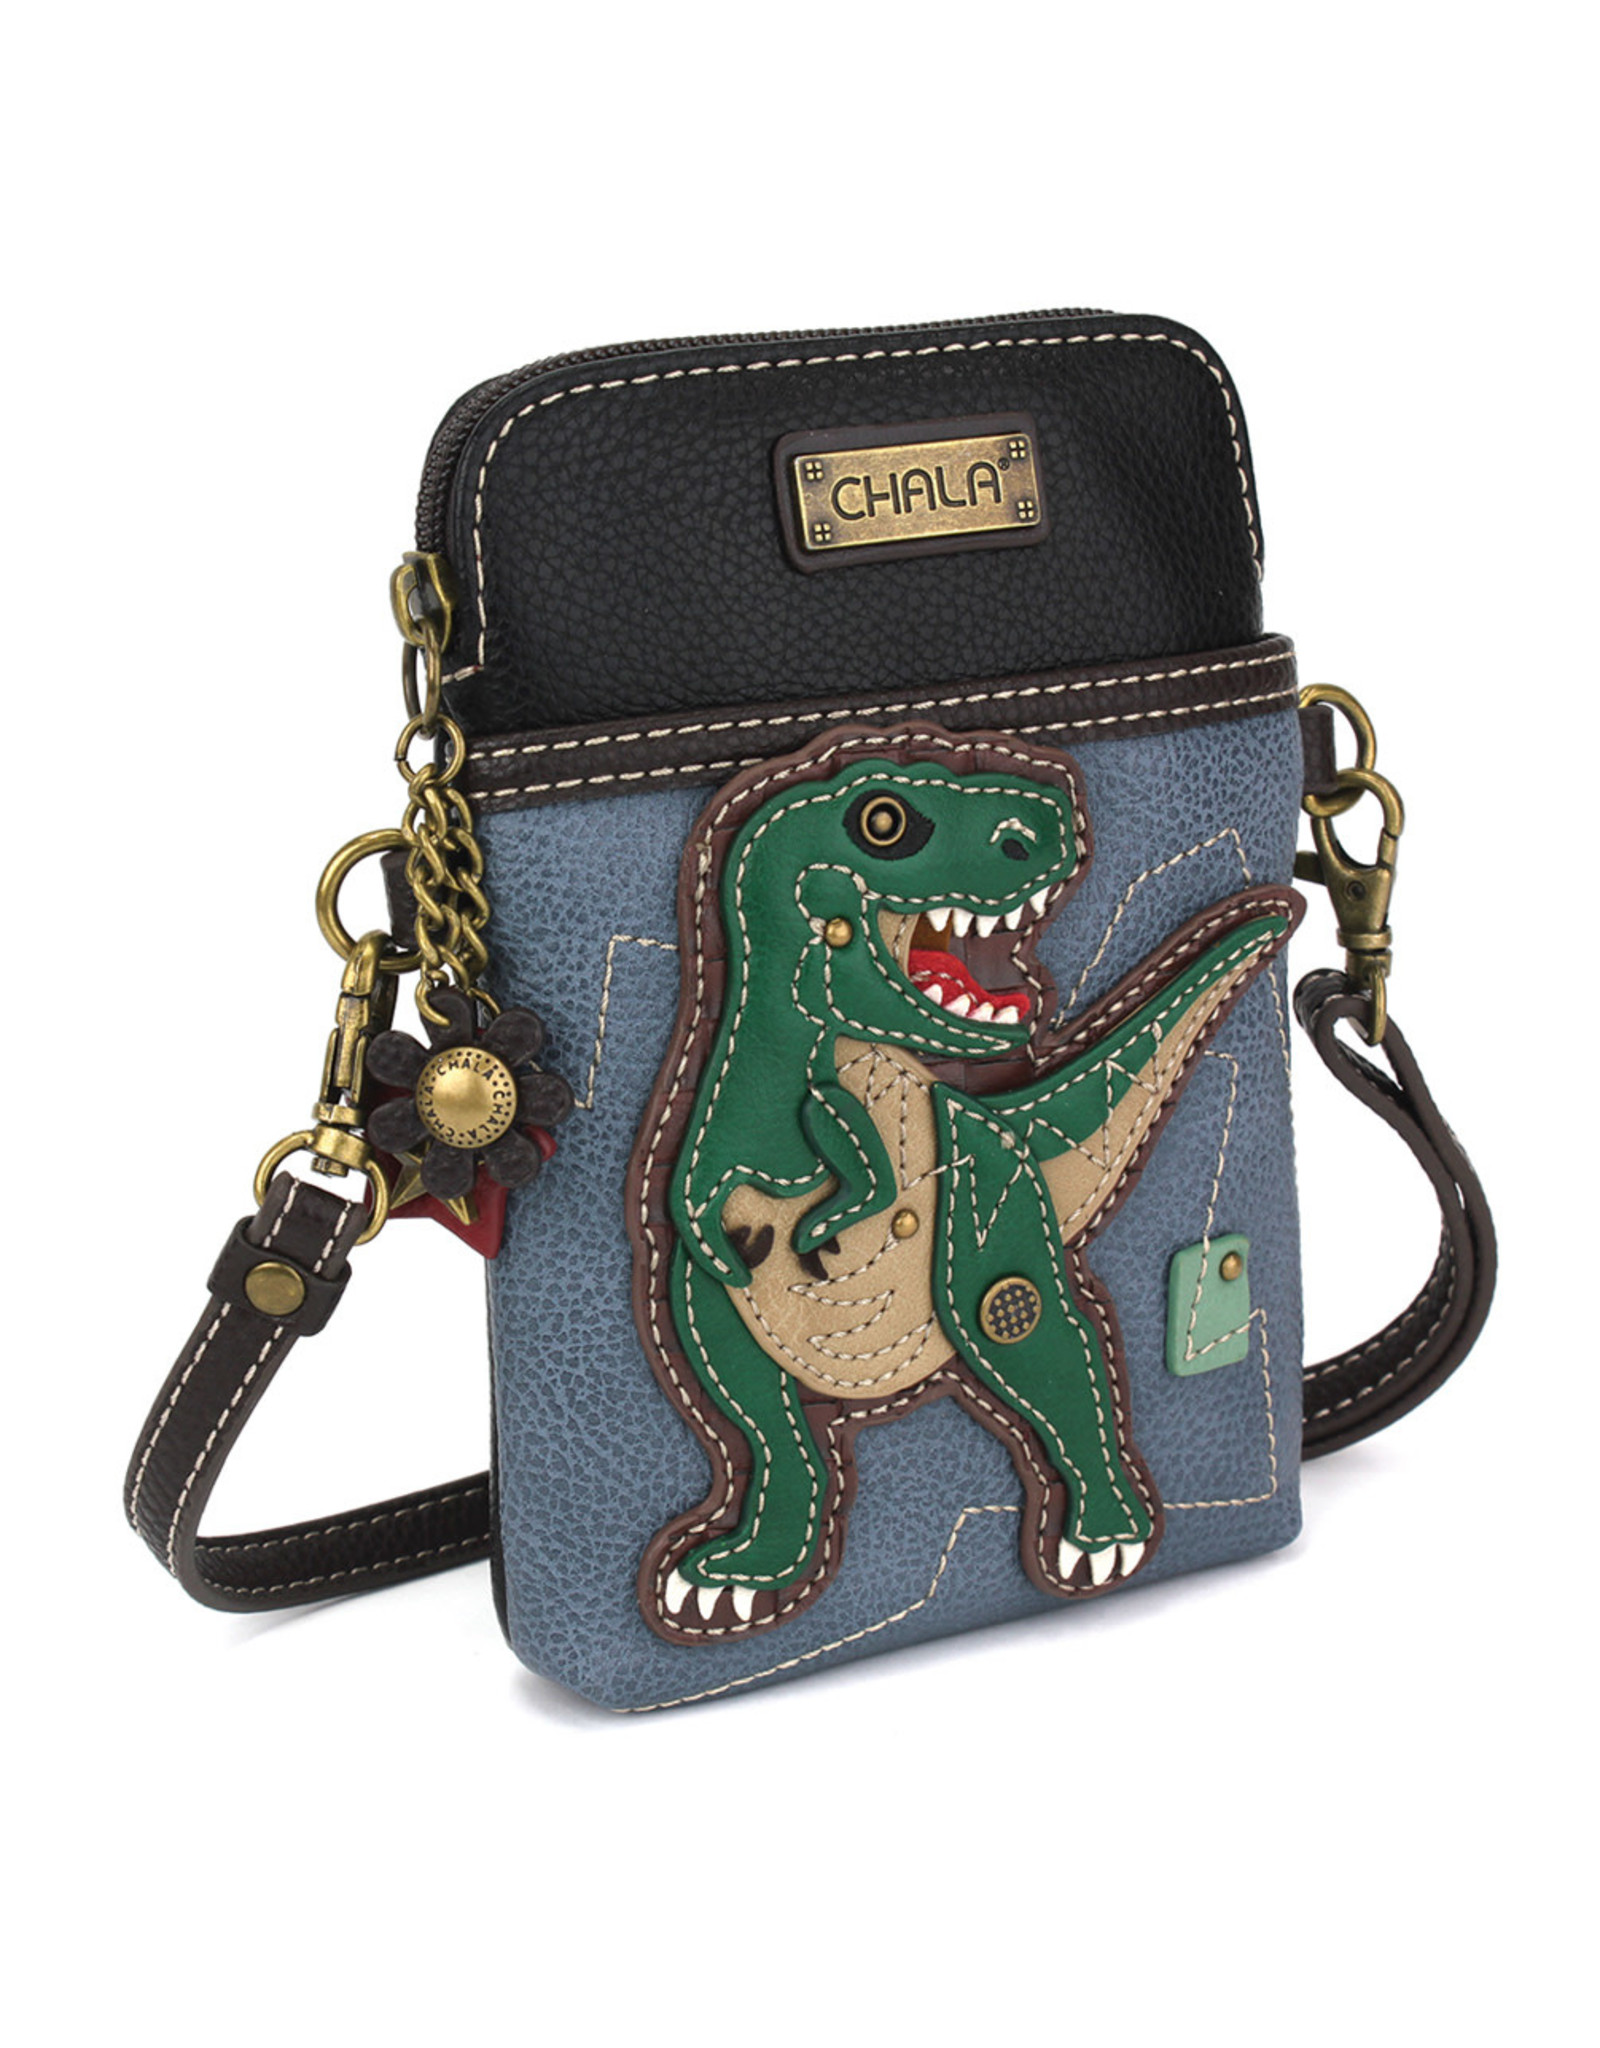 Chala Cell Phone Crossbody - T-Rex